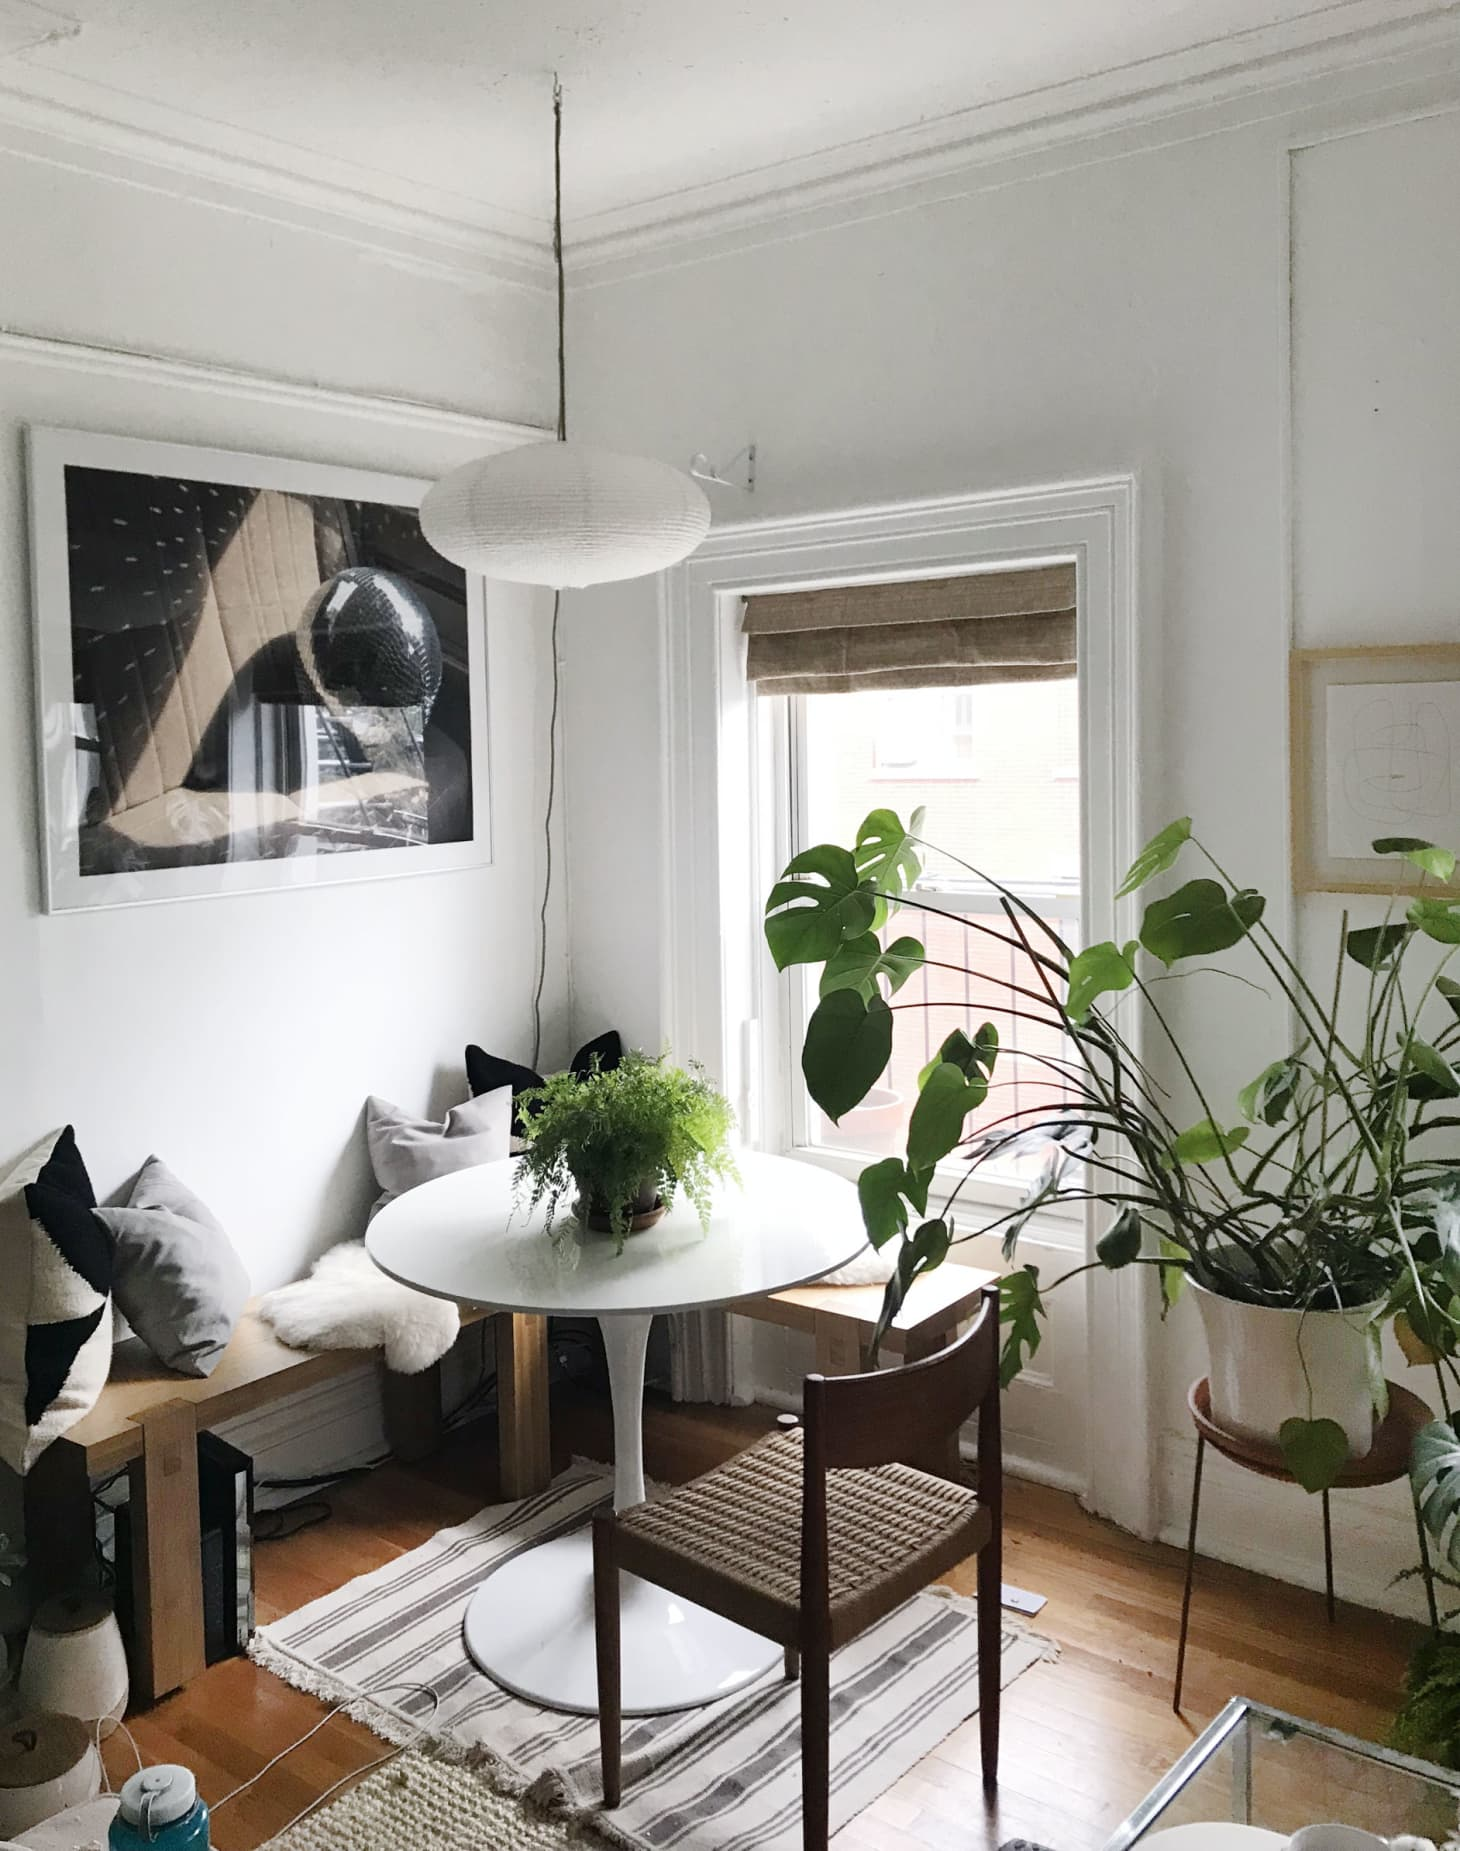 Stupendous How To Fit A Dining Table In A Small Living Room Apartment Unemploymentrelief Wooden Chair Designs For Living Room Unemploymentrelieforg